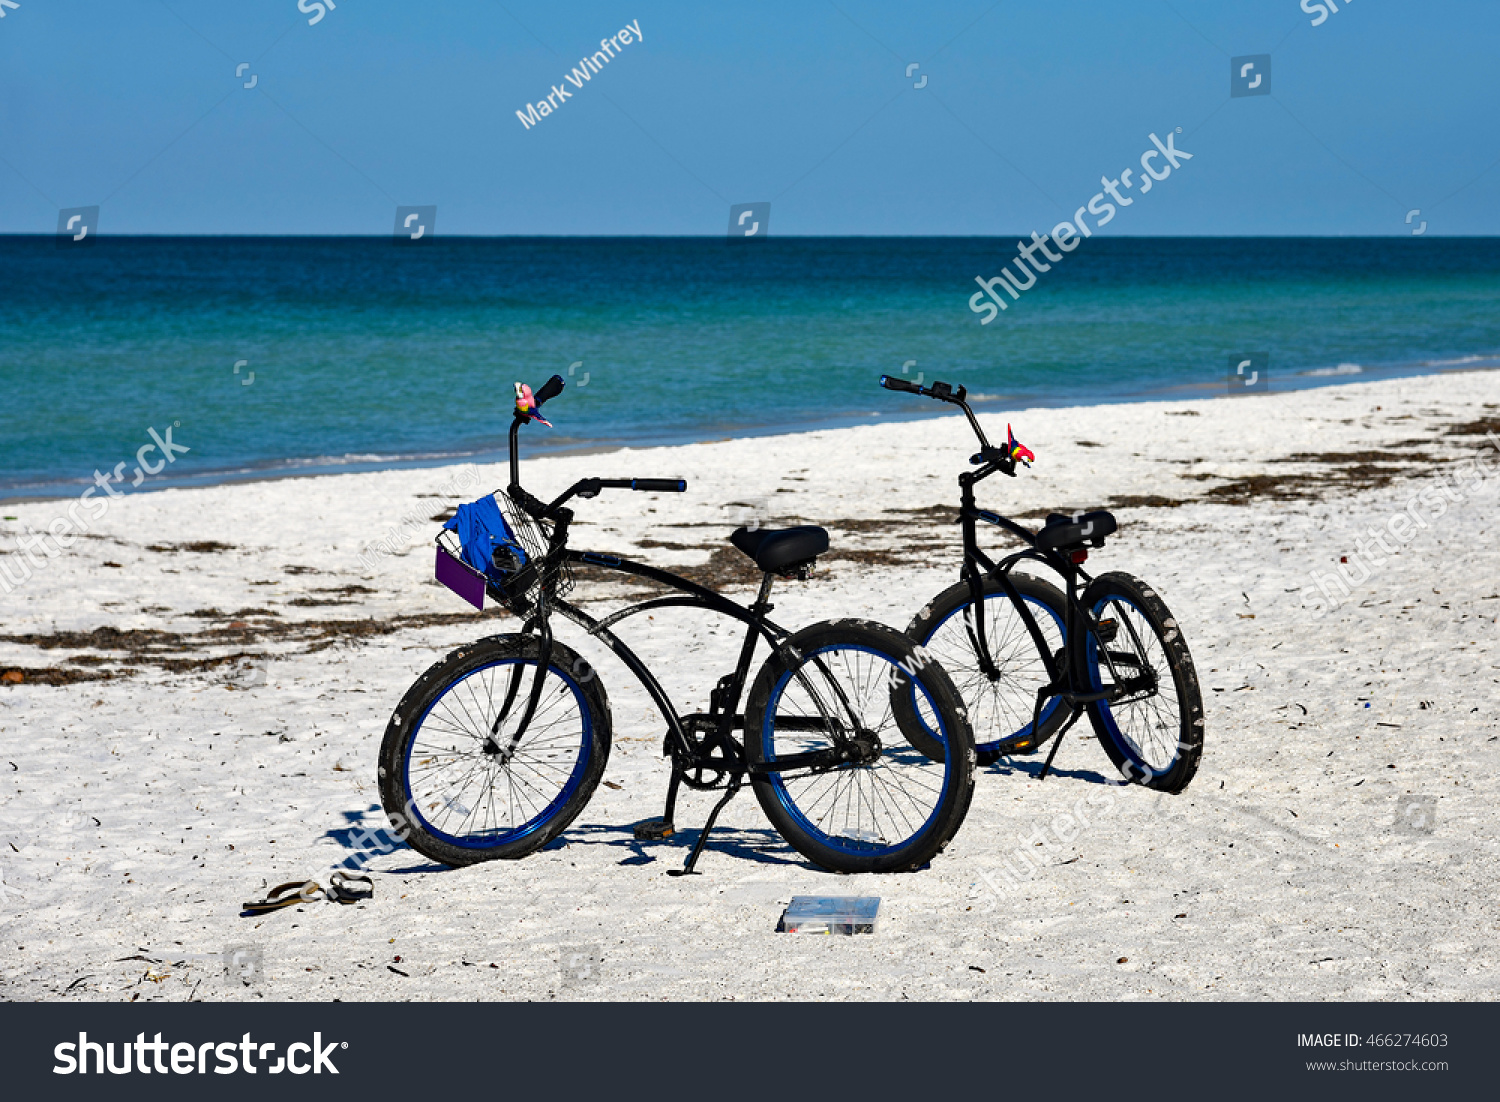 stock-photo-two-bicycles-with-baskets-pa